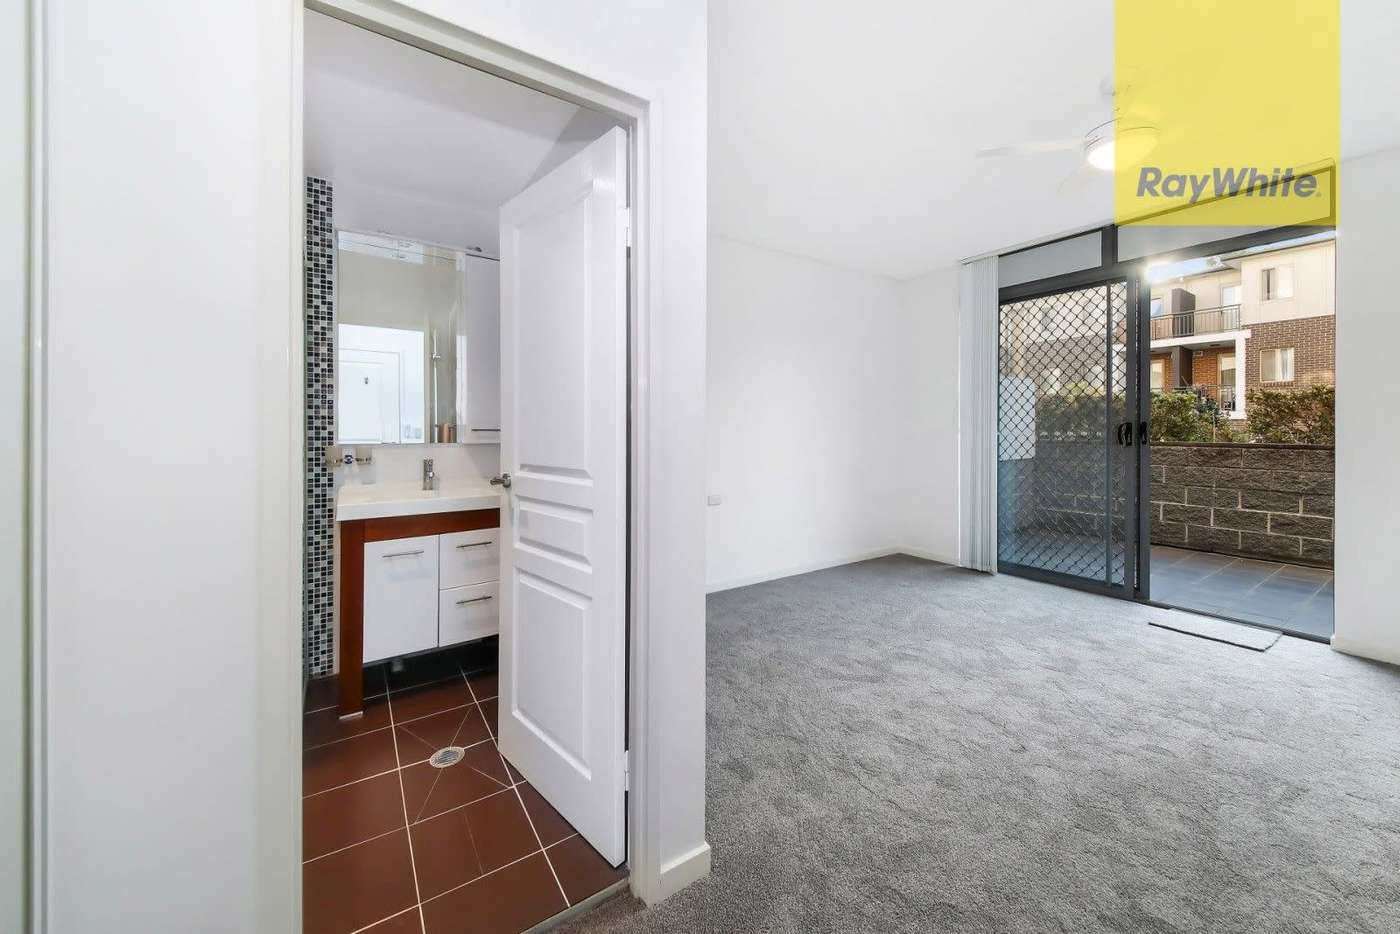 Fifth view of Homely apartment listing, 30/28 Brickworks Drive, Holroyd NSW 2142